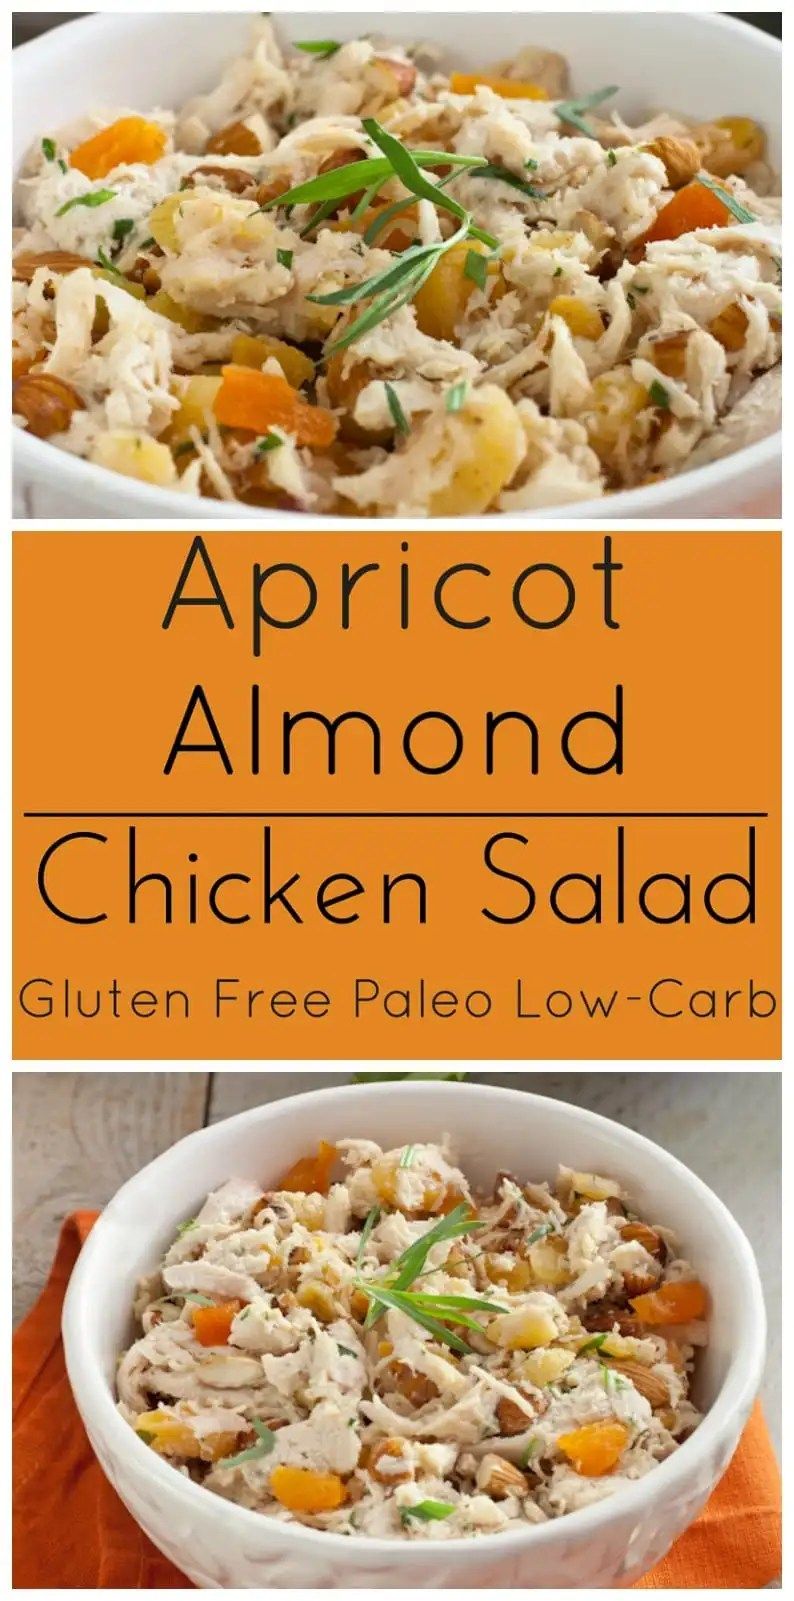 Apricot almond chicken salad is a creamy, all white meat chicken salad ...